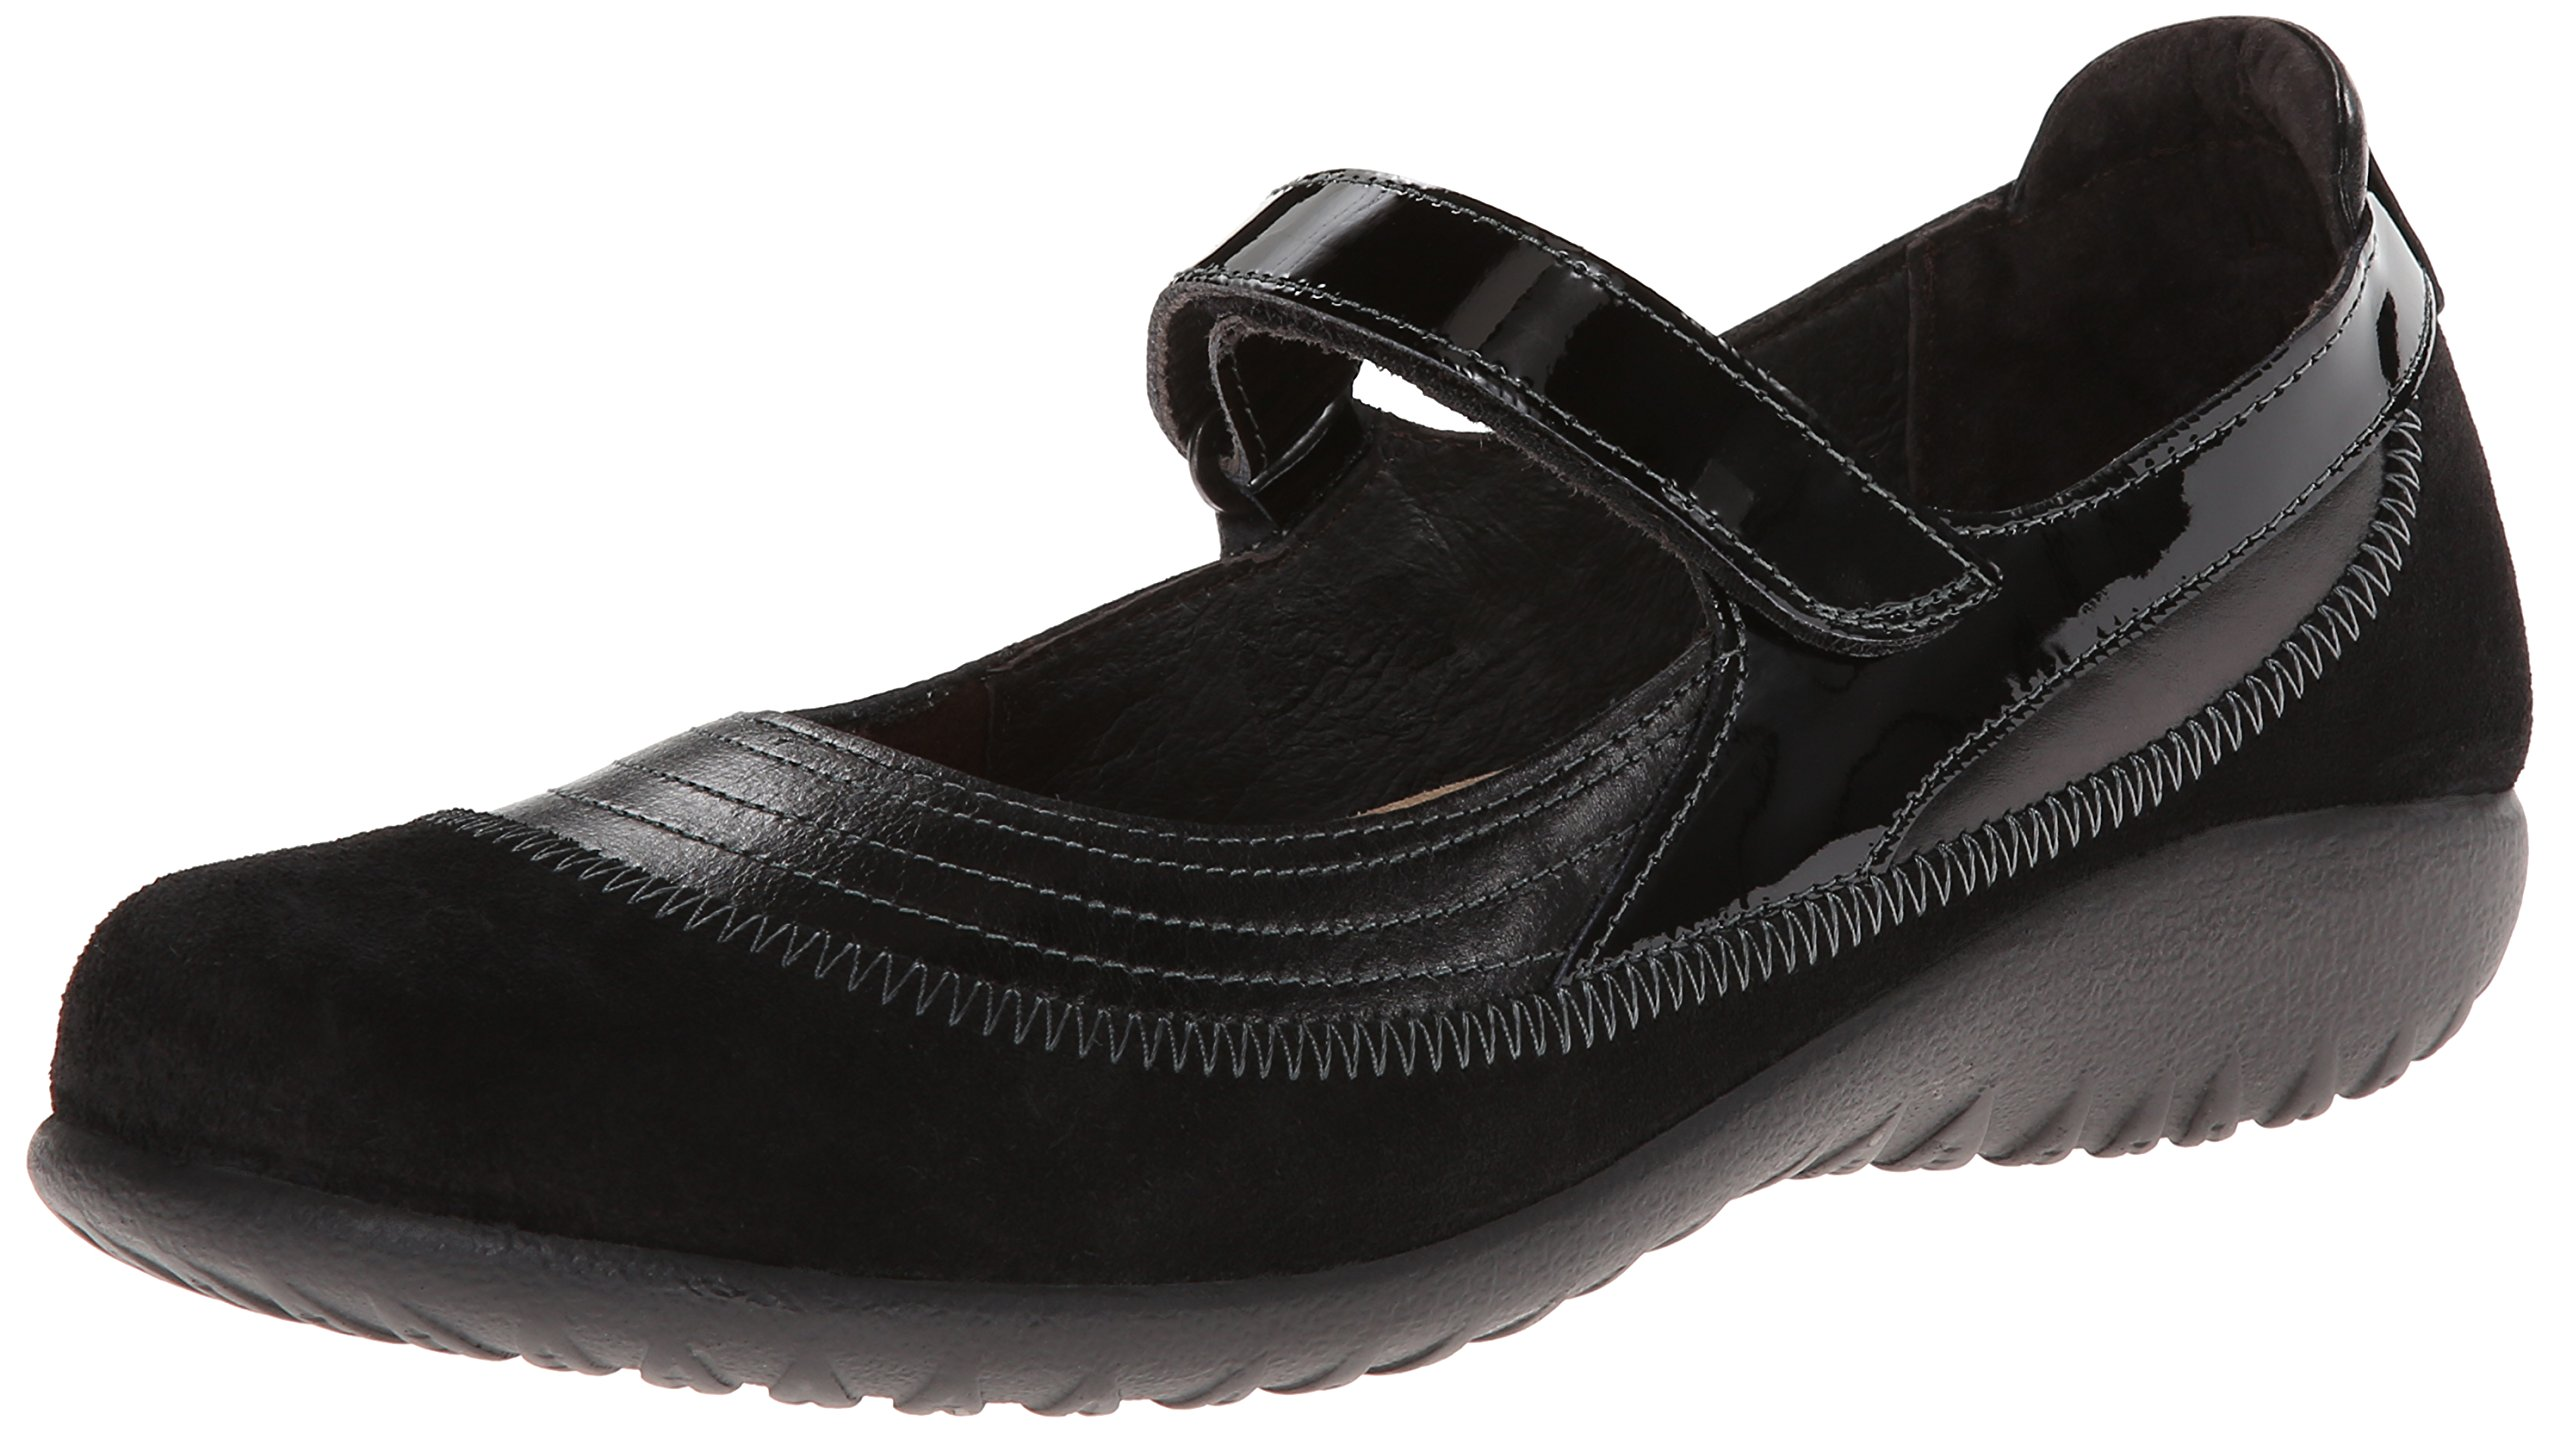 Naot Women's Kirei Wide Flat, Black, 35 EU/4 M US by NAOT